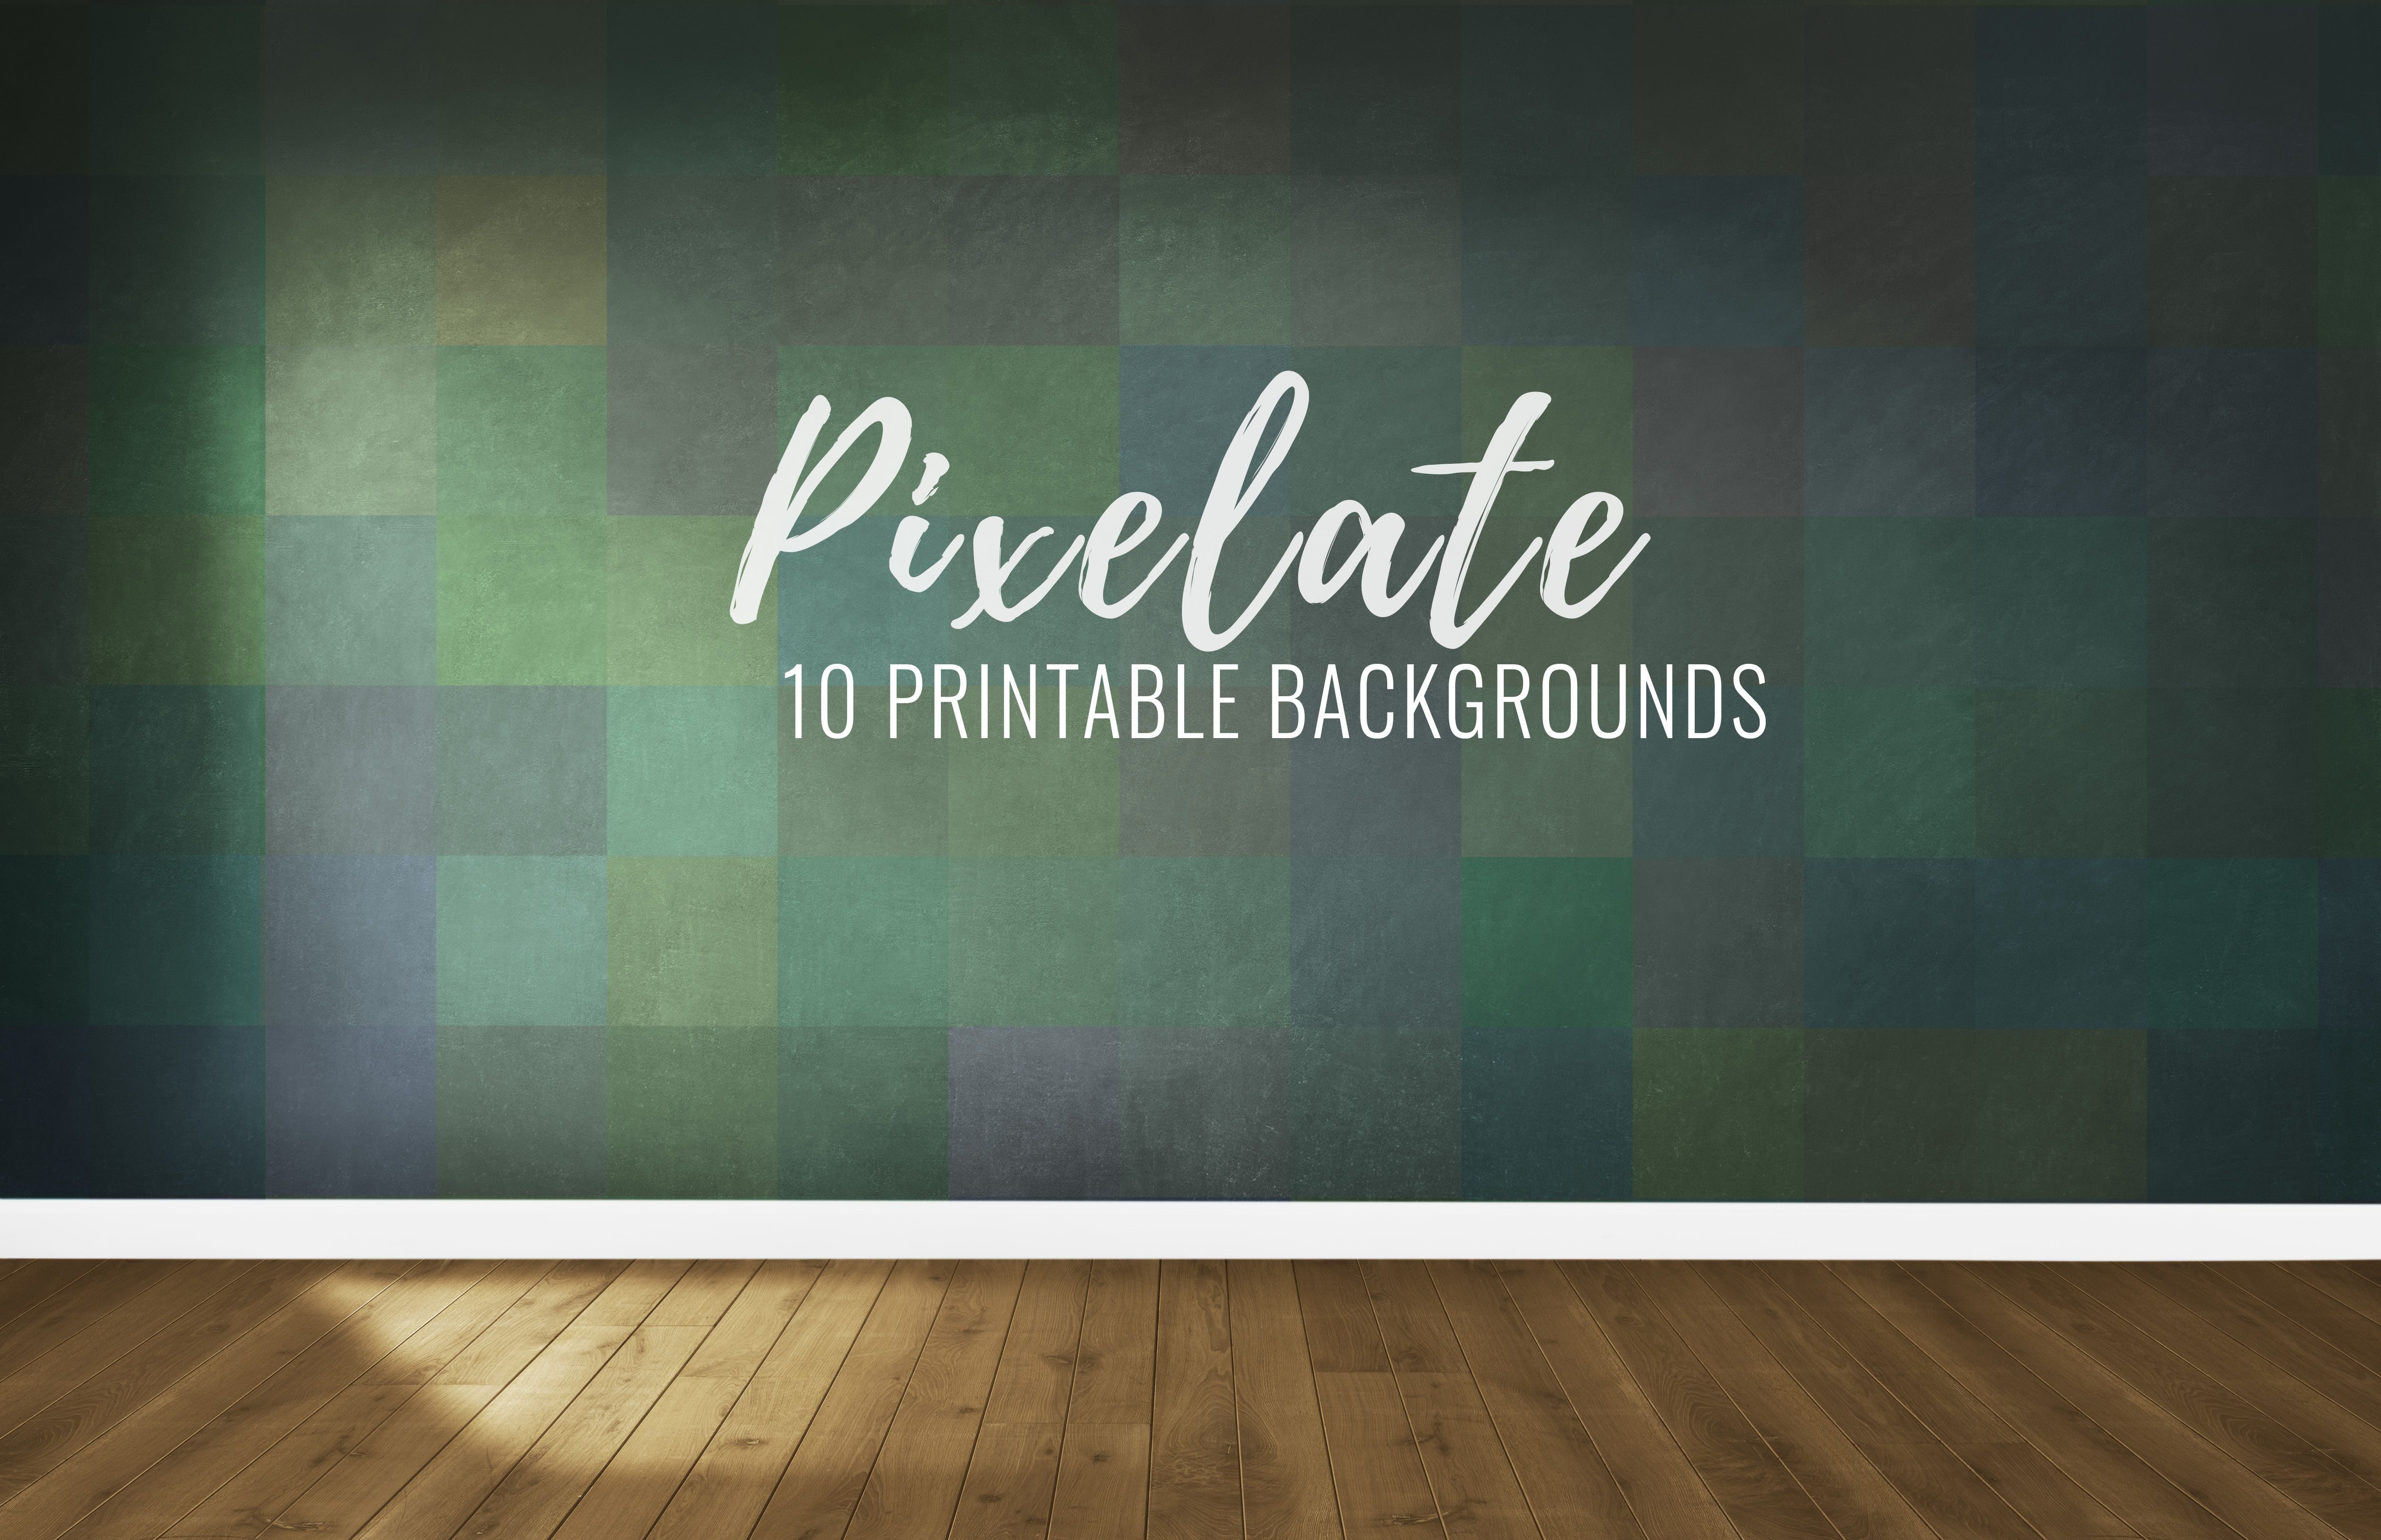 10 Pixelated Printable Backgrounds Screenshot 3